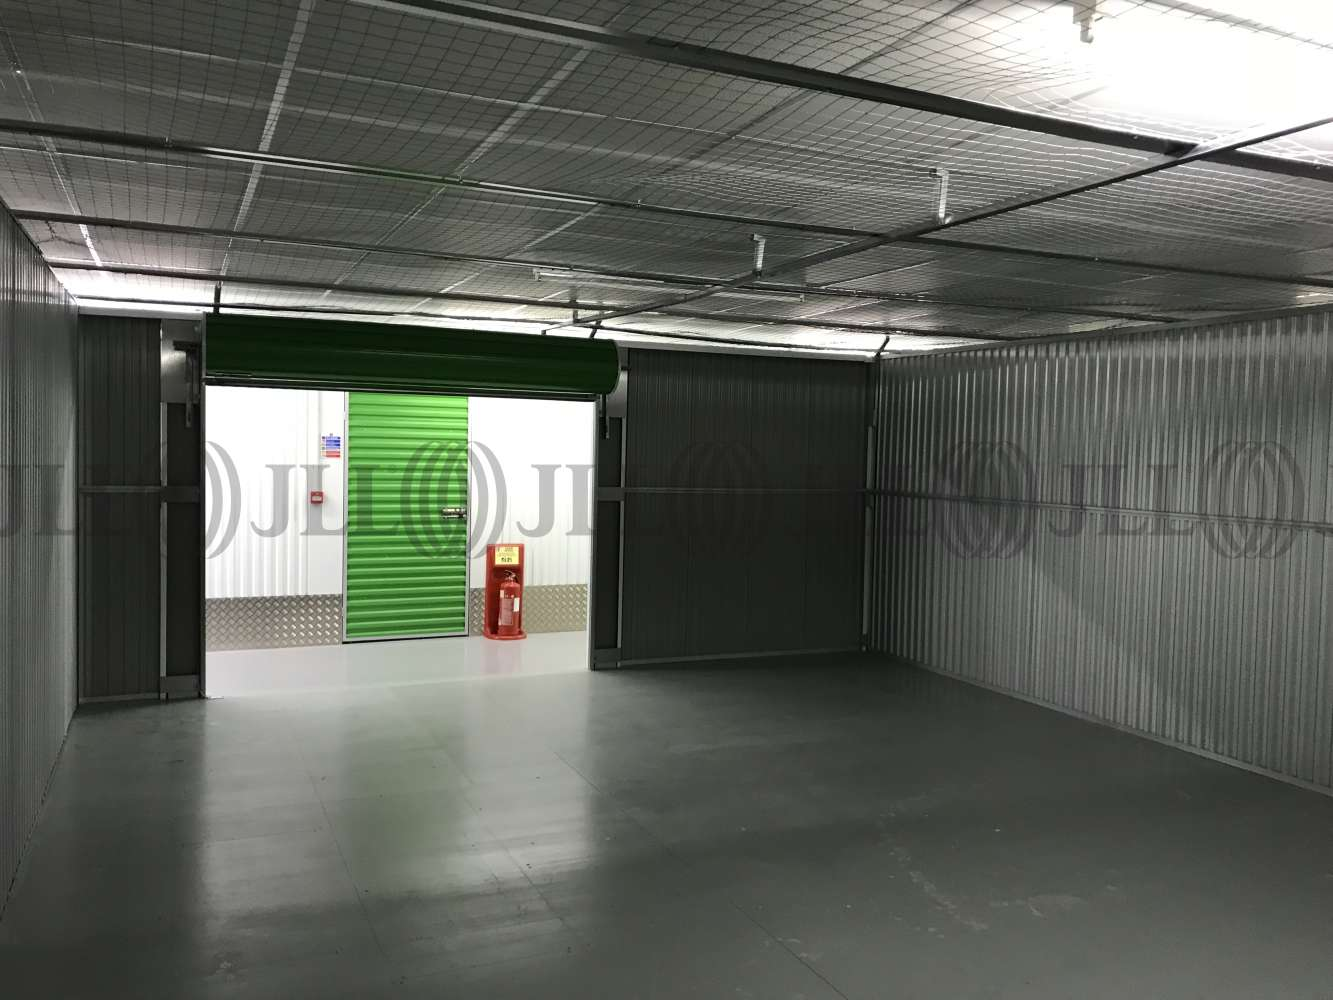 Industrial Waltham abbey, EN9 1JD - Commercial storage and office space - 0512